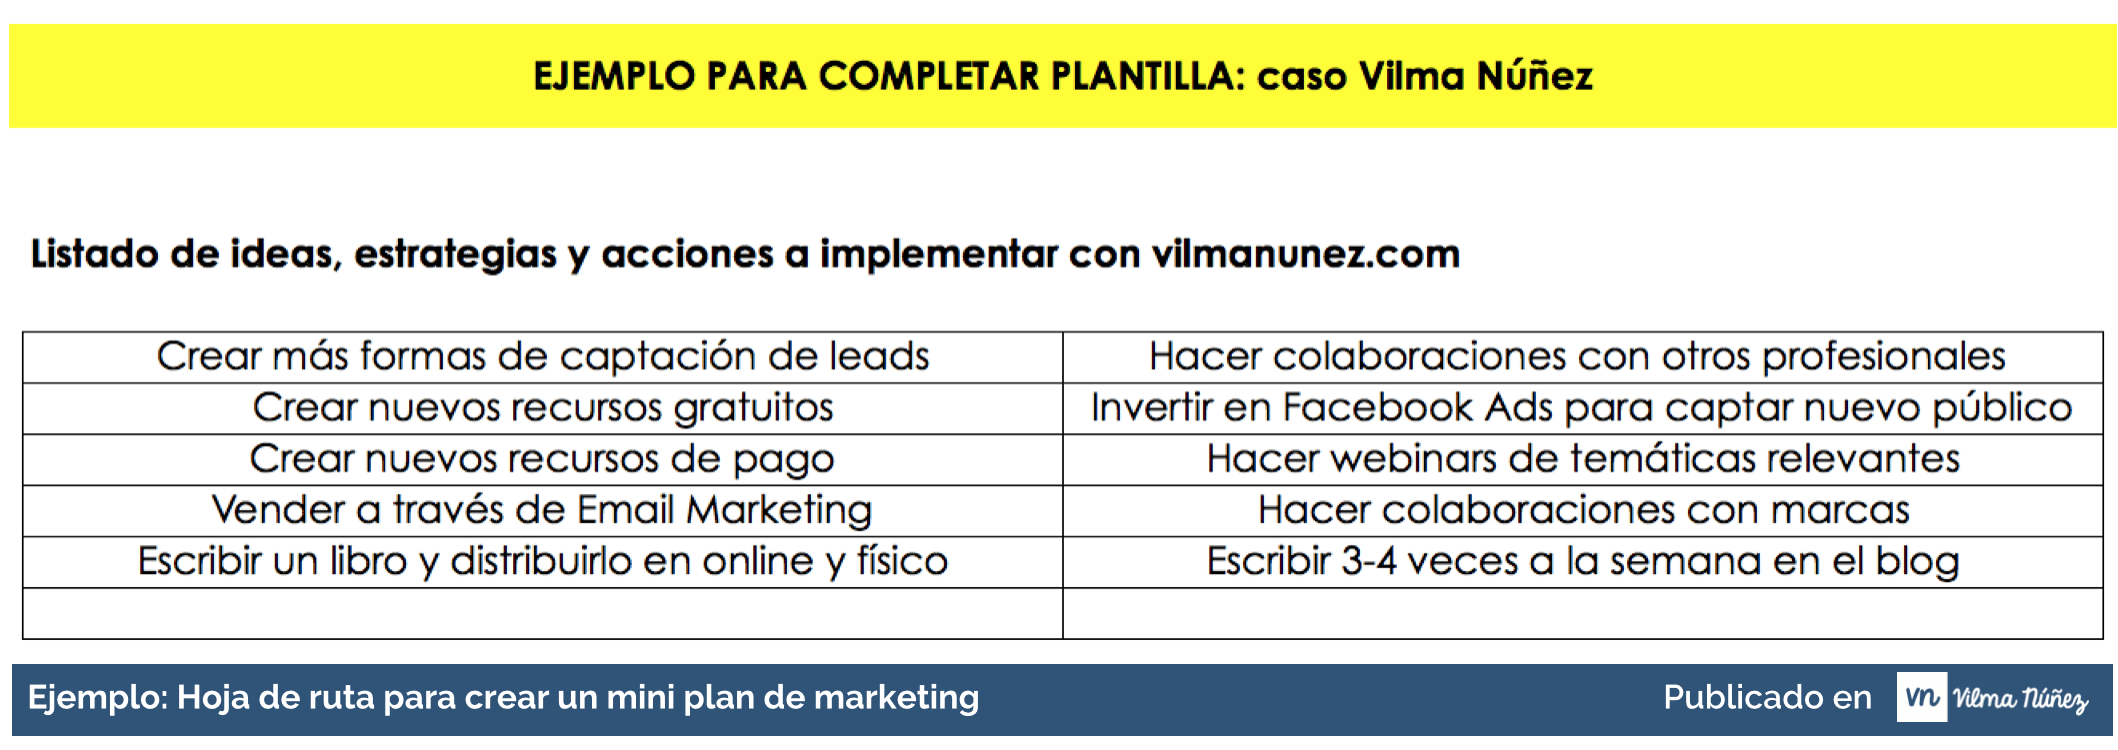 Plantilla Con Hoja De Ruta Para Crear Un Mini Plan De Marketing